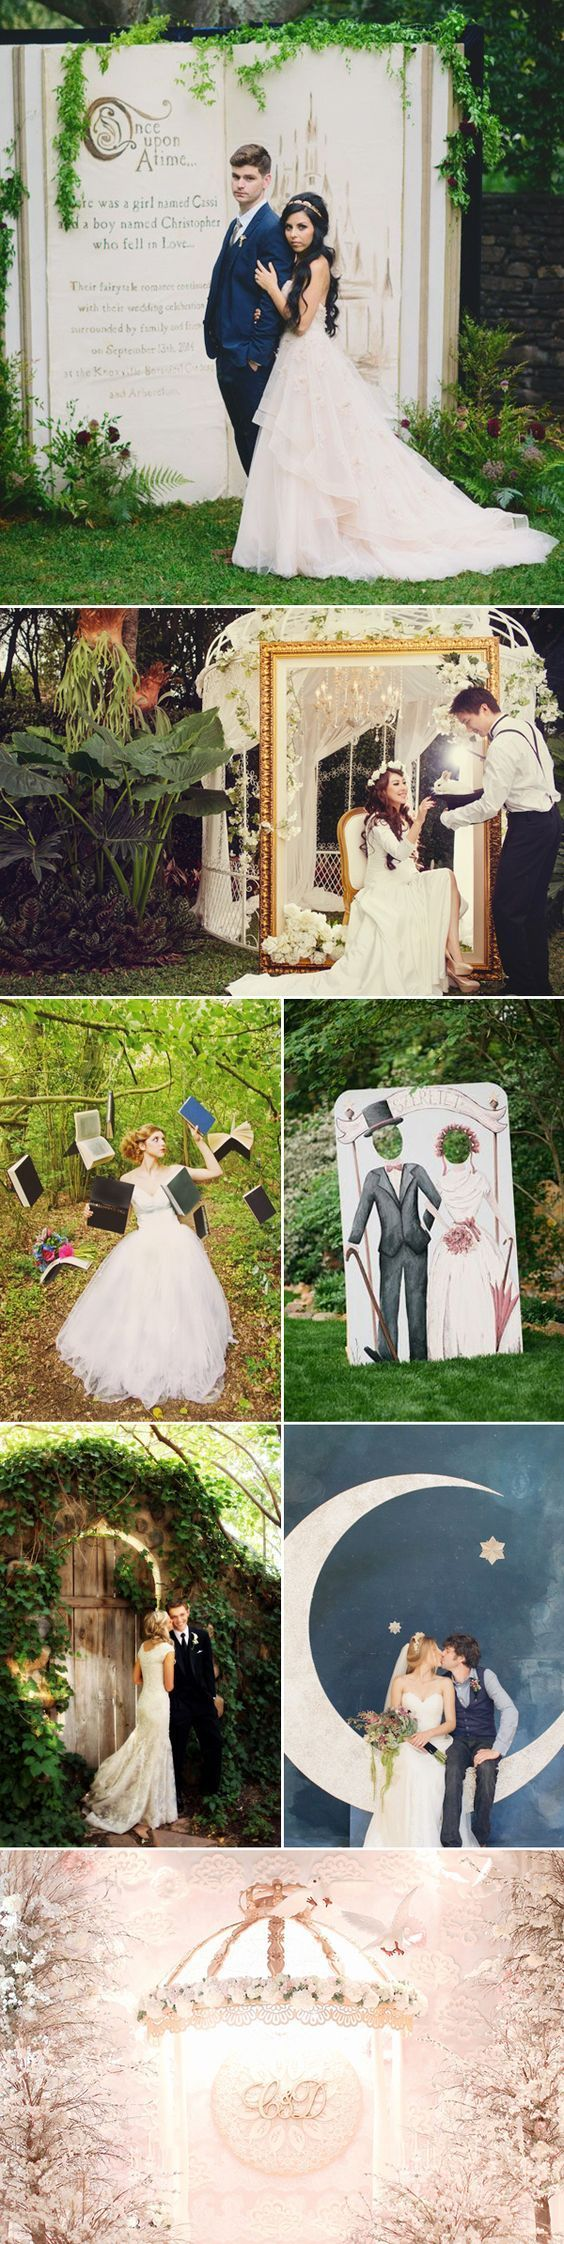 Creative Wedding Photo Backdrops. #wedding #cocomelody